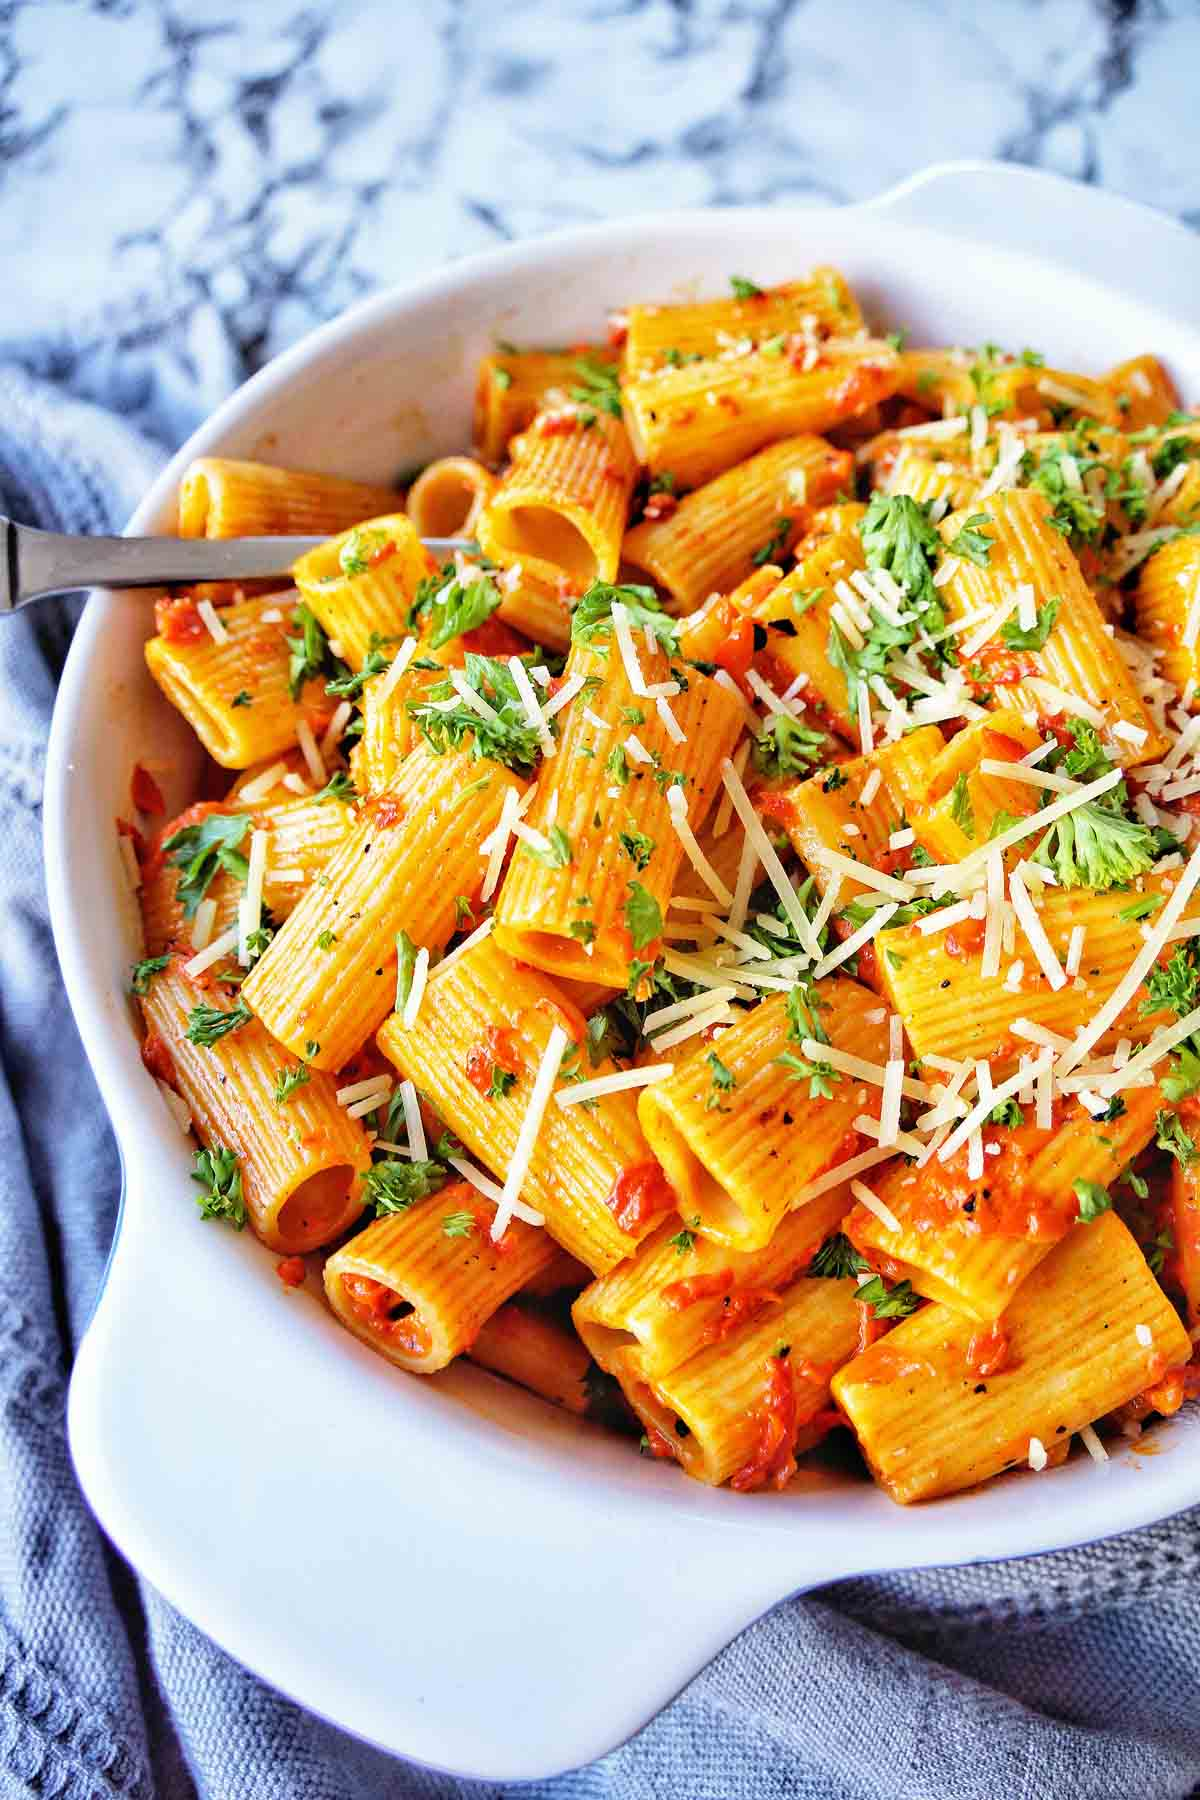 Rigatoni with sauce in a bowl with server